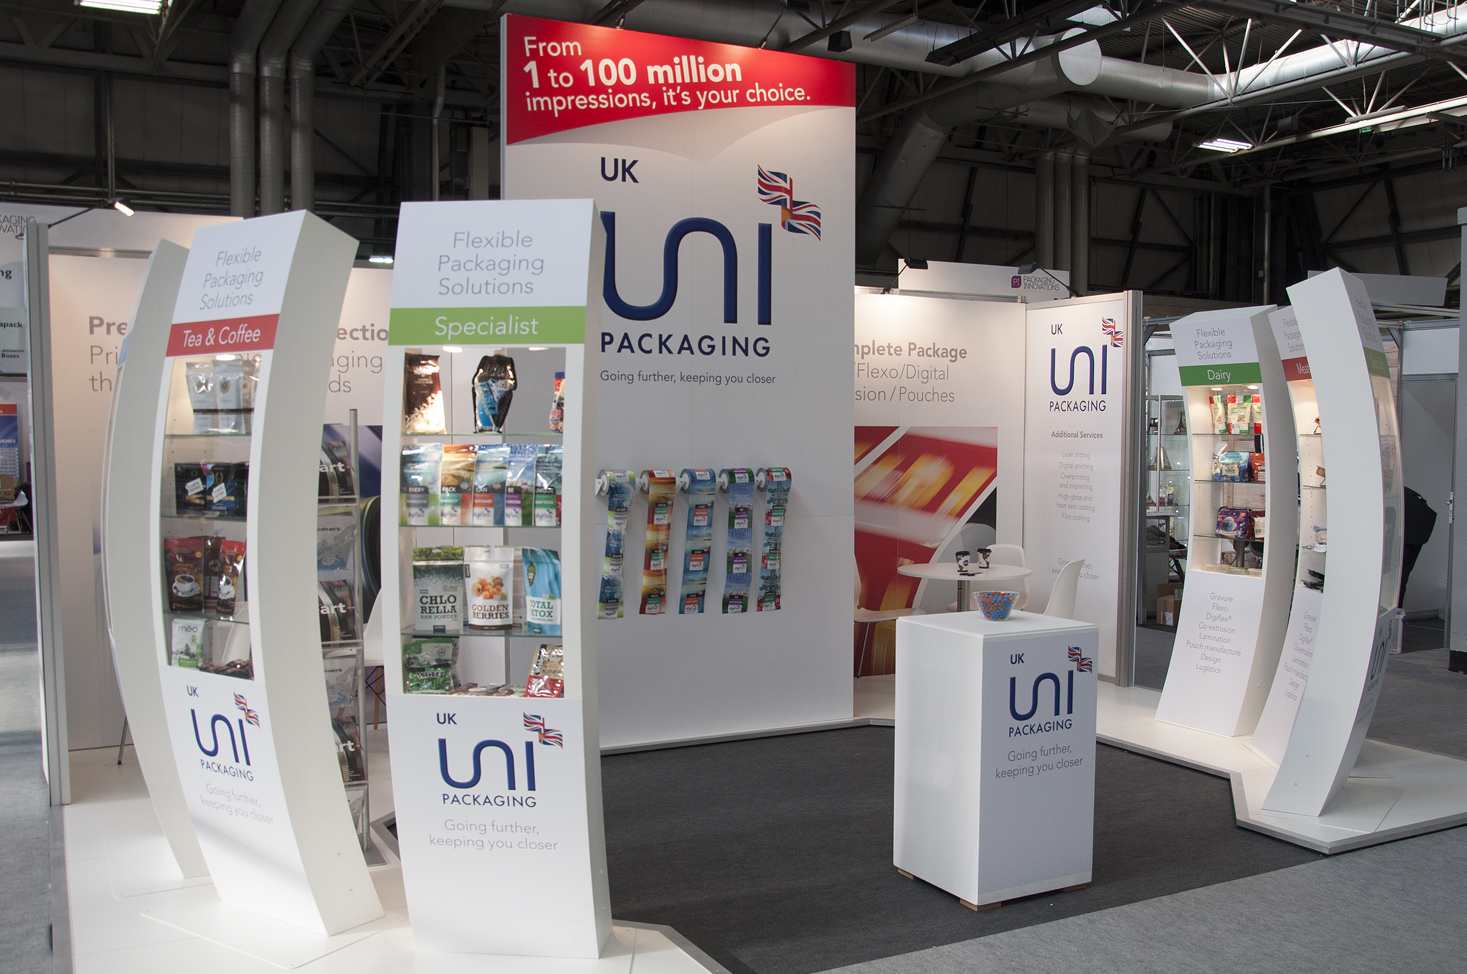 Packaging Innovations trade show strategy for UNI UK